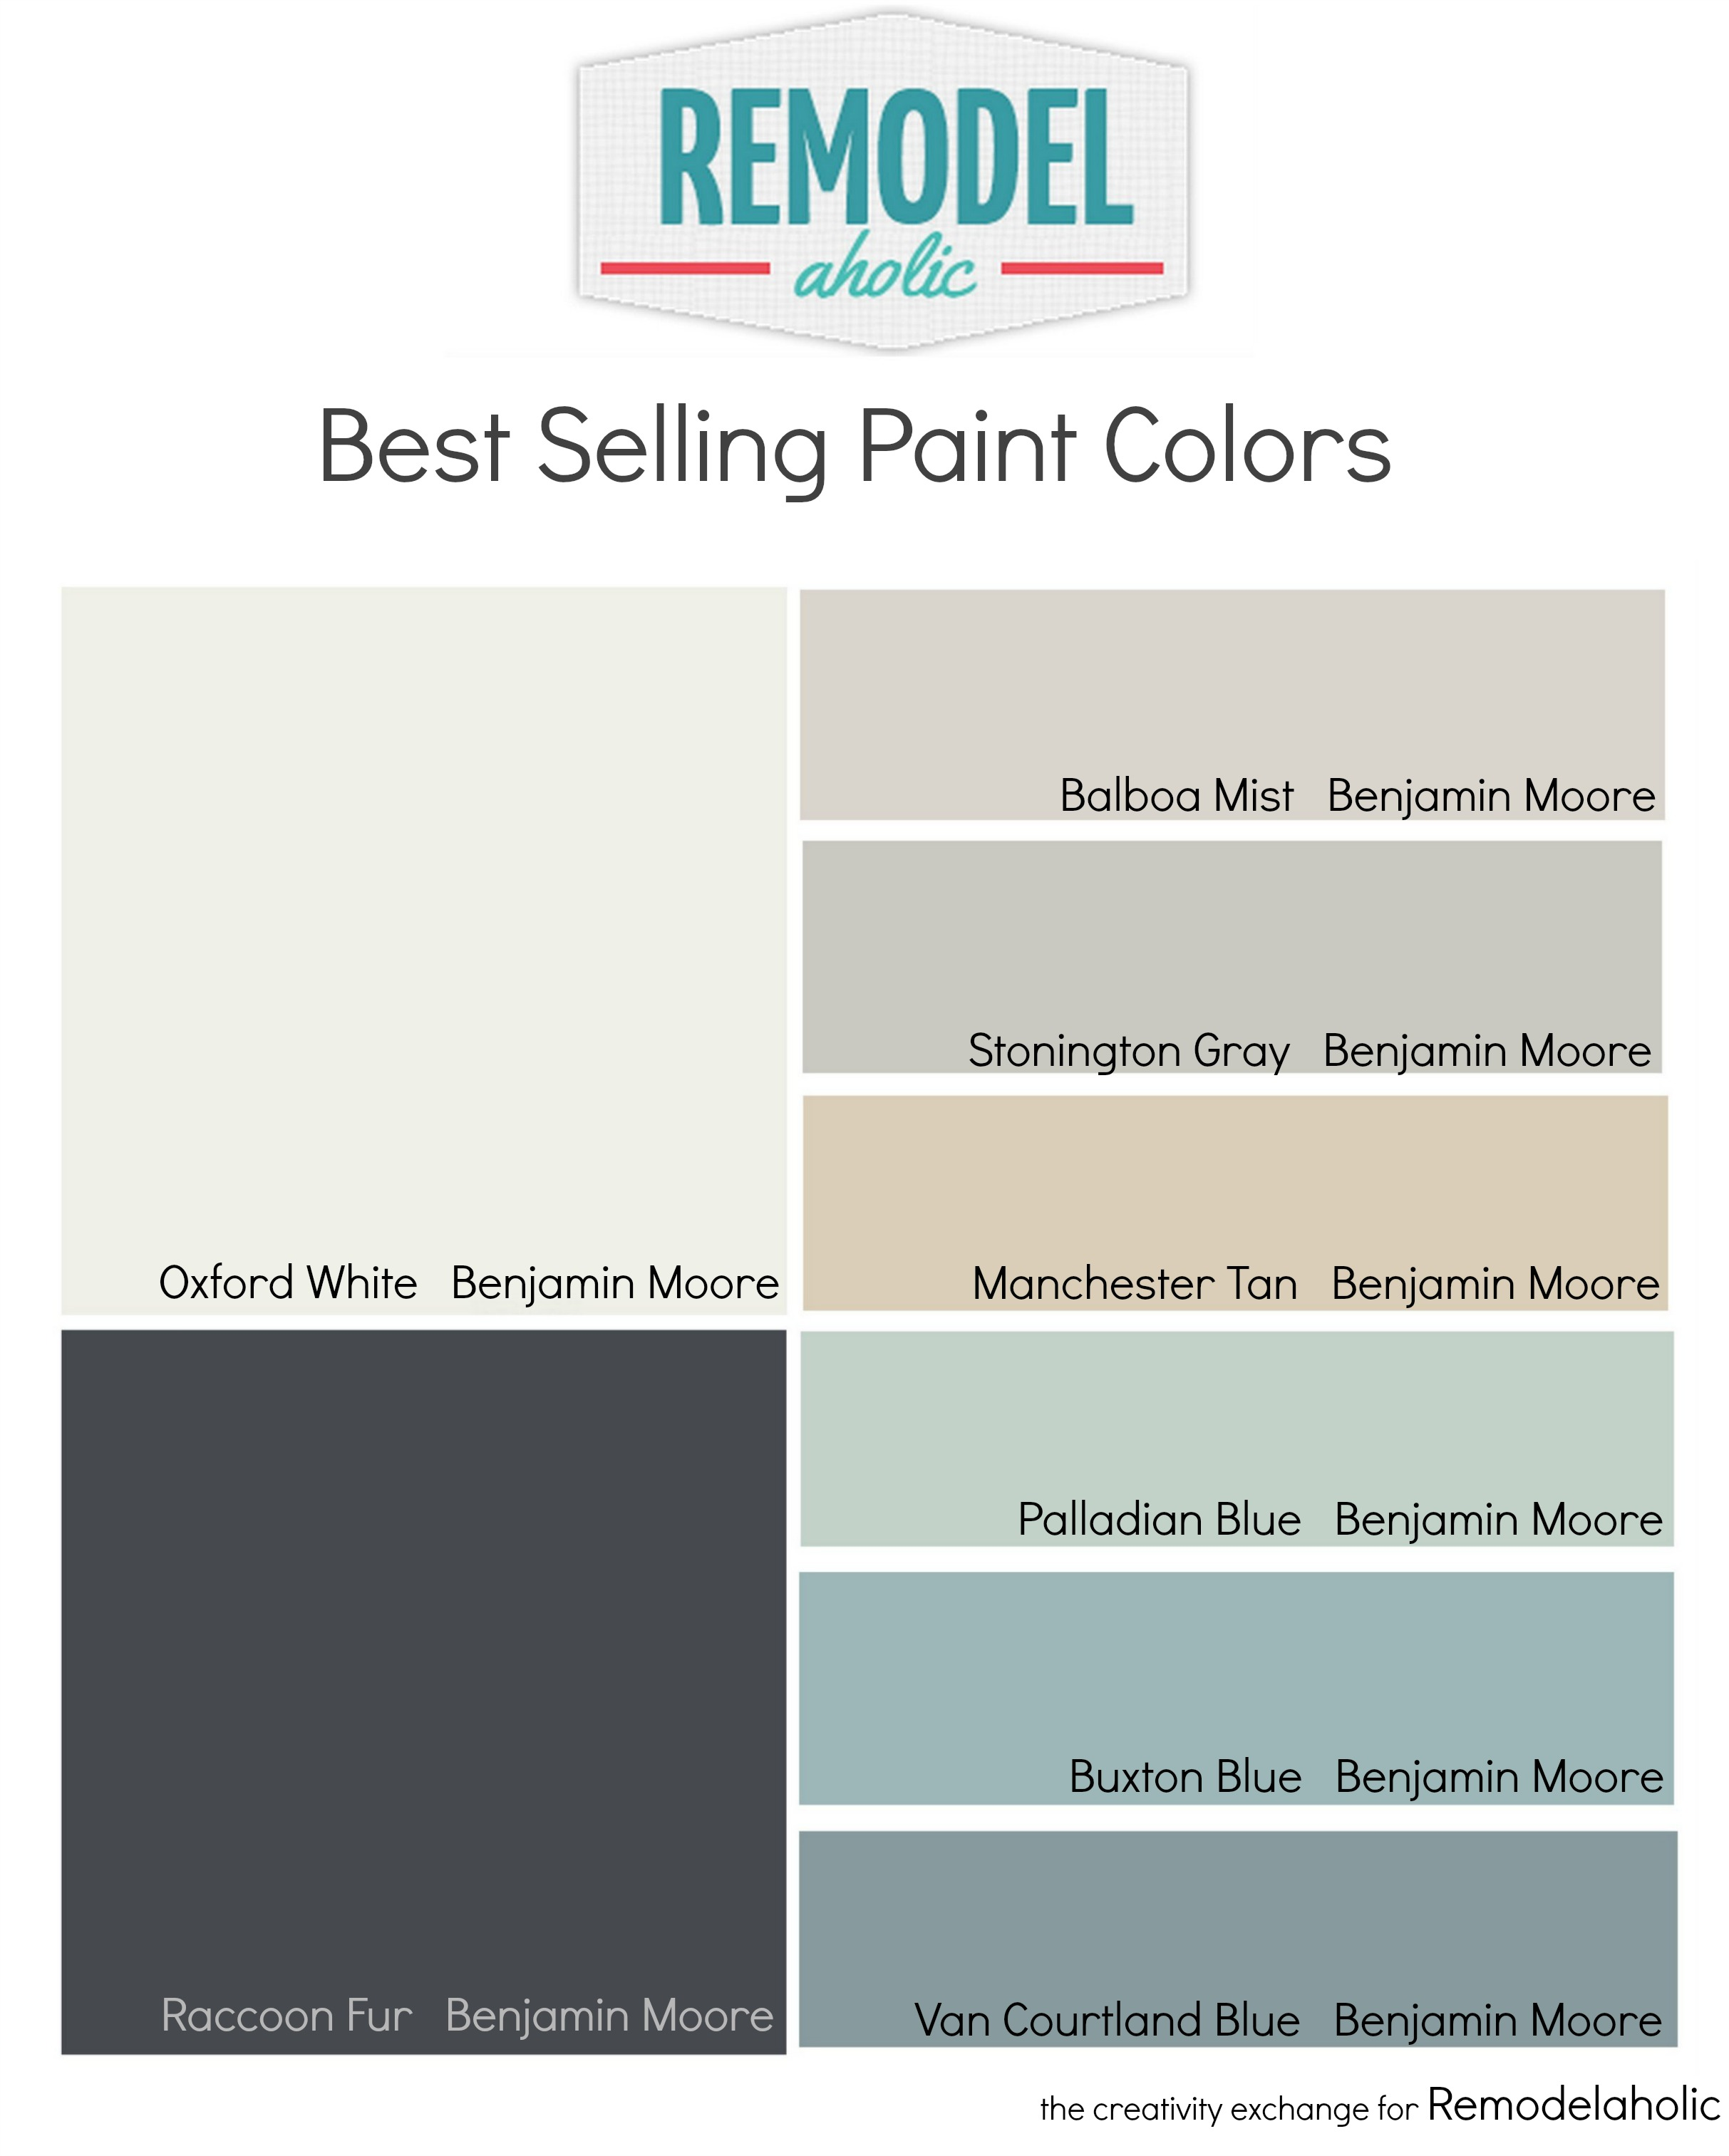 Most Popular Paint Colors Remodelaholic  Most Popular And Best Selling Paint Colors